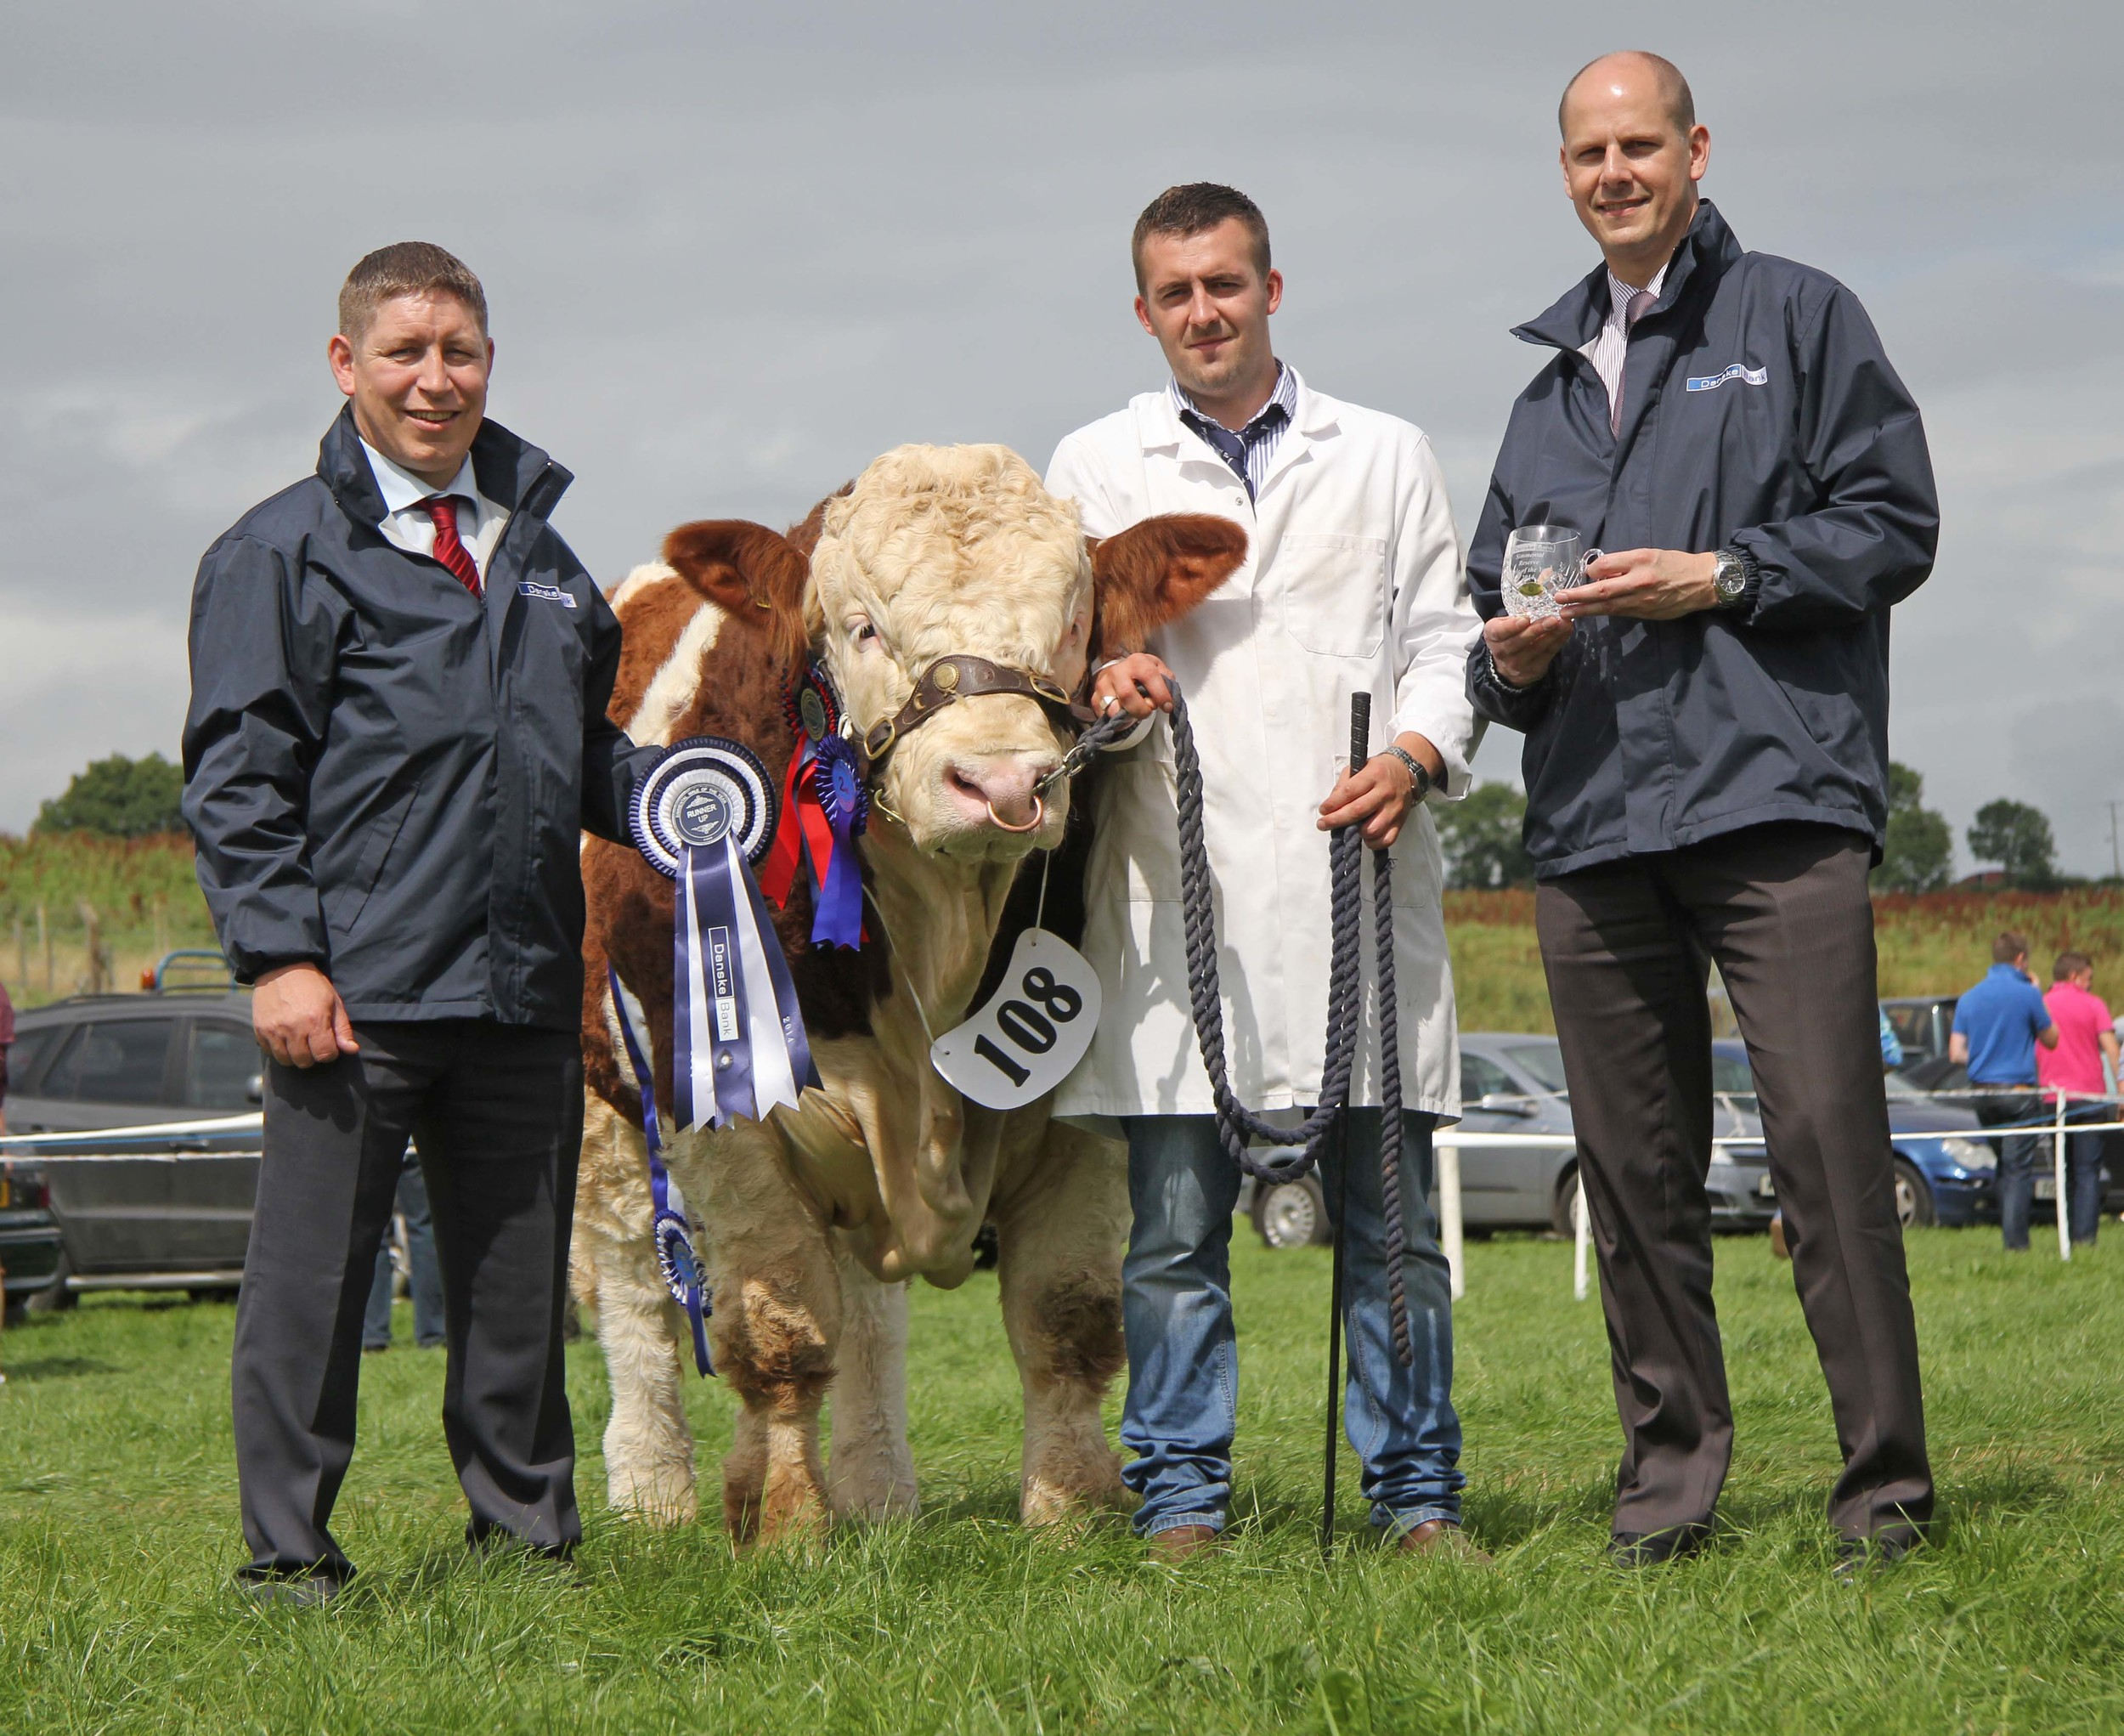 Danske Bank Reserve Simmental Male of the Year was Slievenagh Extra Special shown by Christopher Boyd, Portglenone. Adding their congratulations are Rodney Brown and Matthew Johnston, Danske Bank, sponsors.